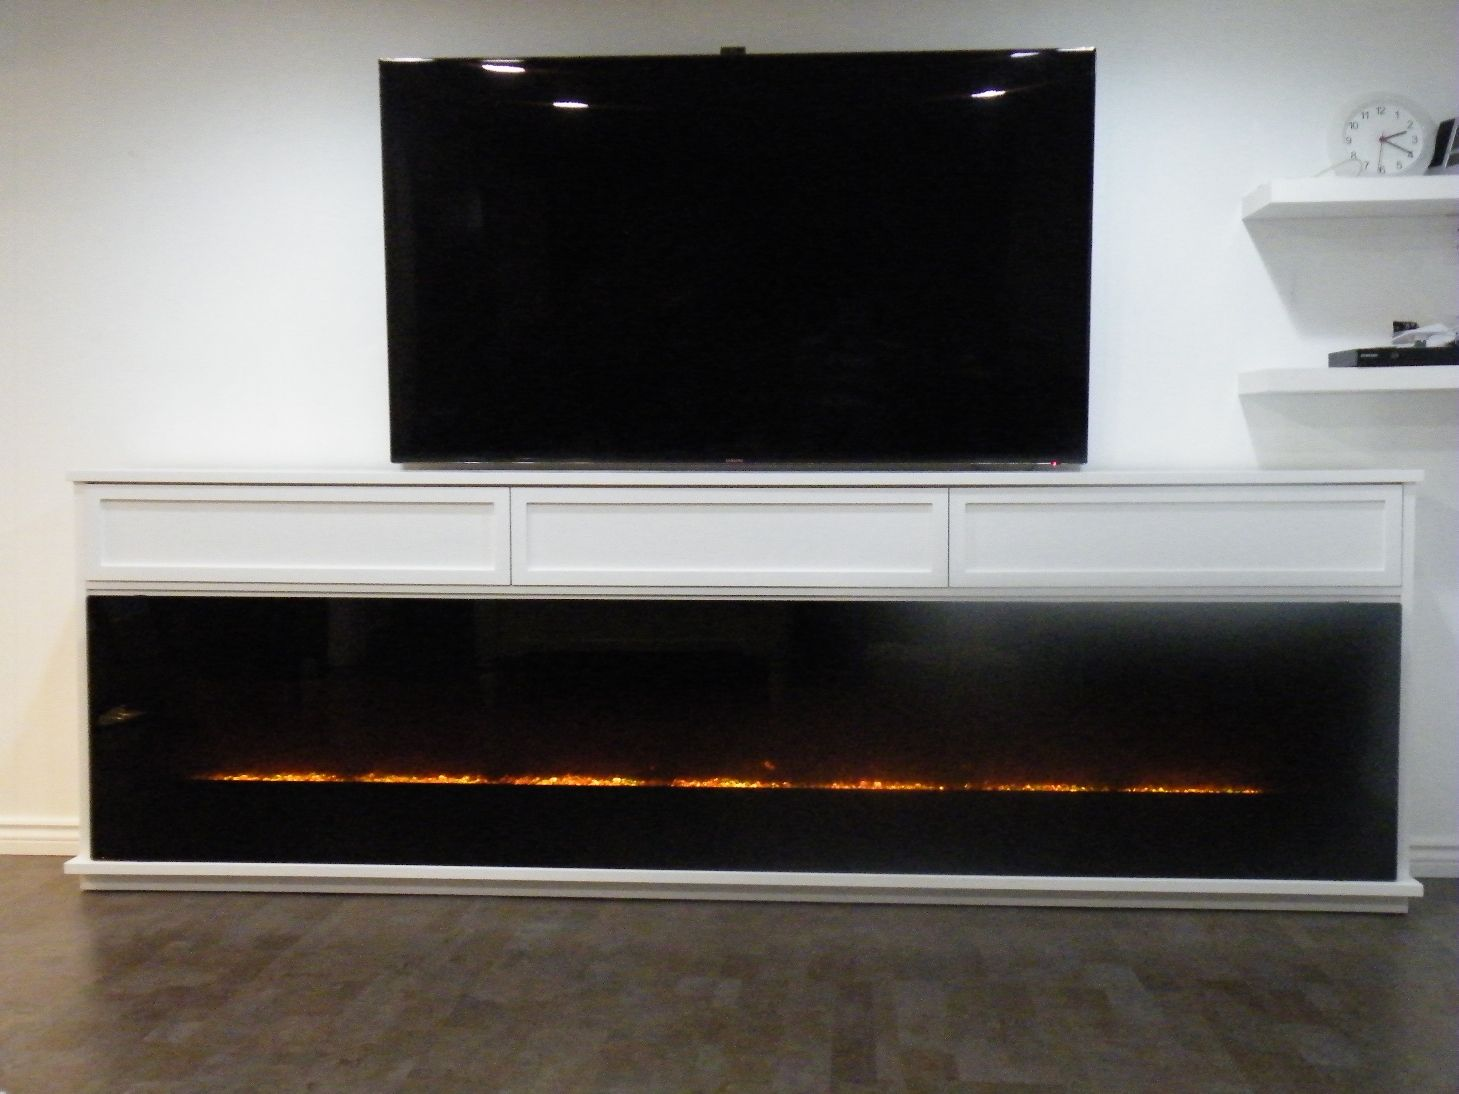 Custom Media Cabinet 119 Wide Featuring 115 Wide Amantii Electric